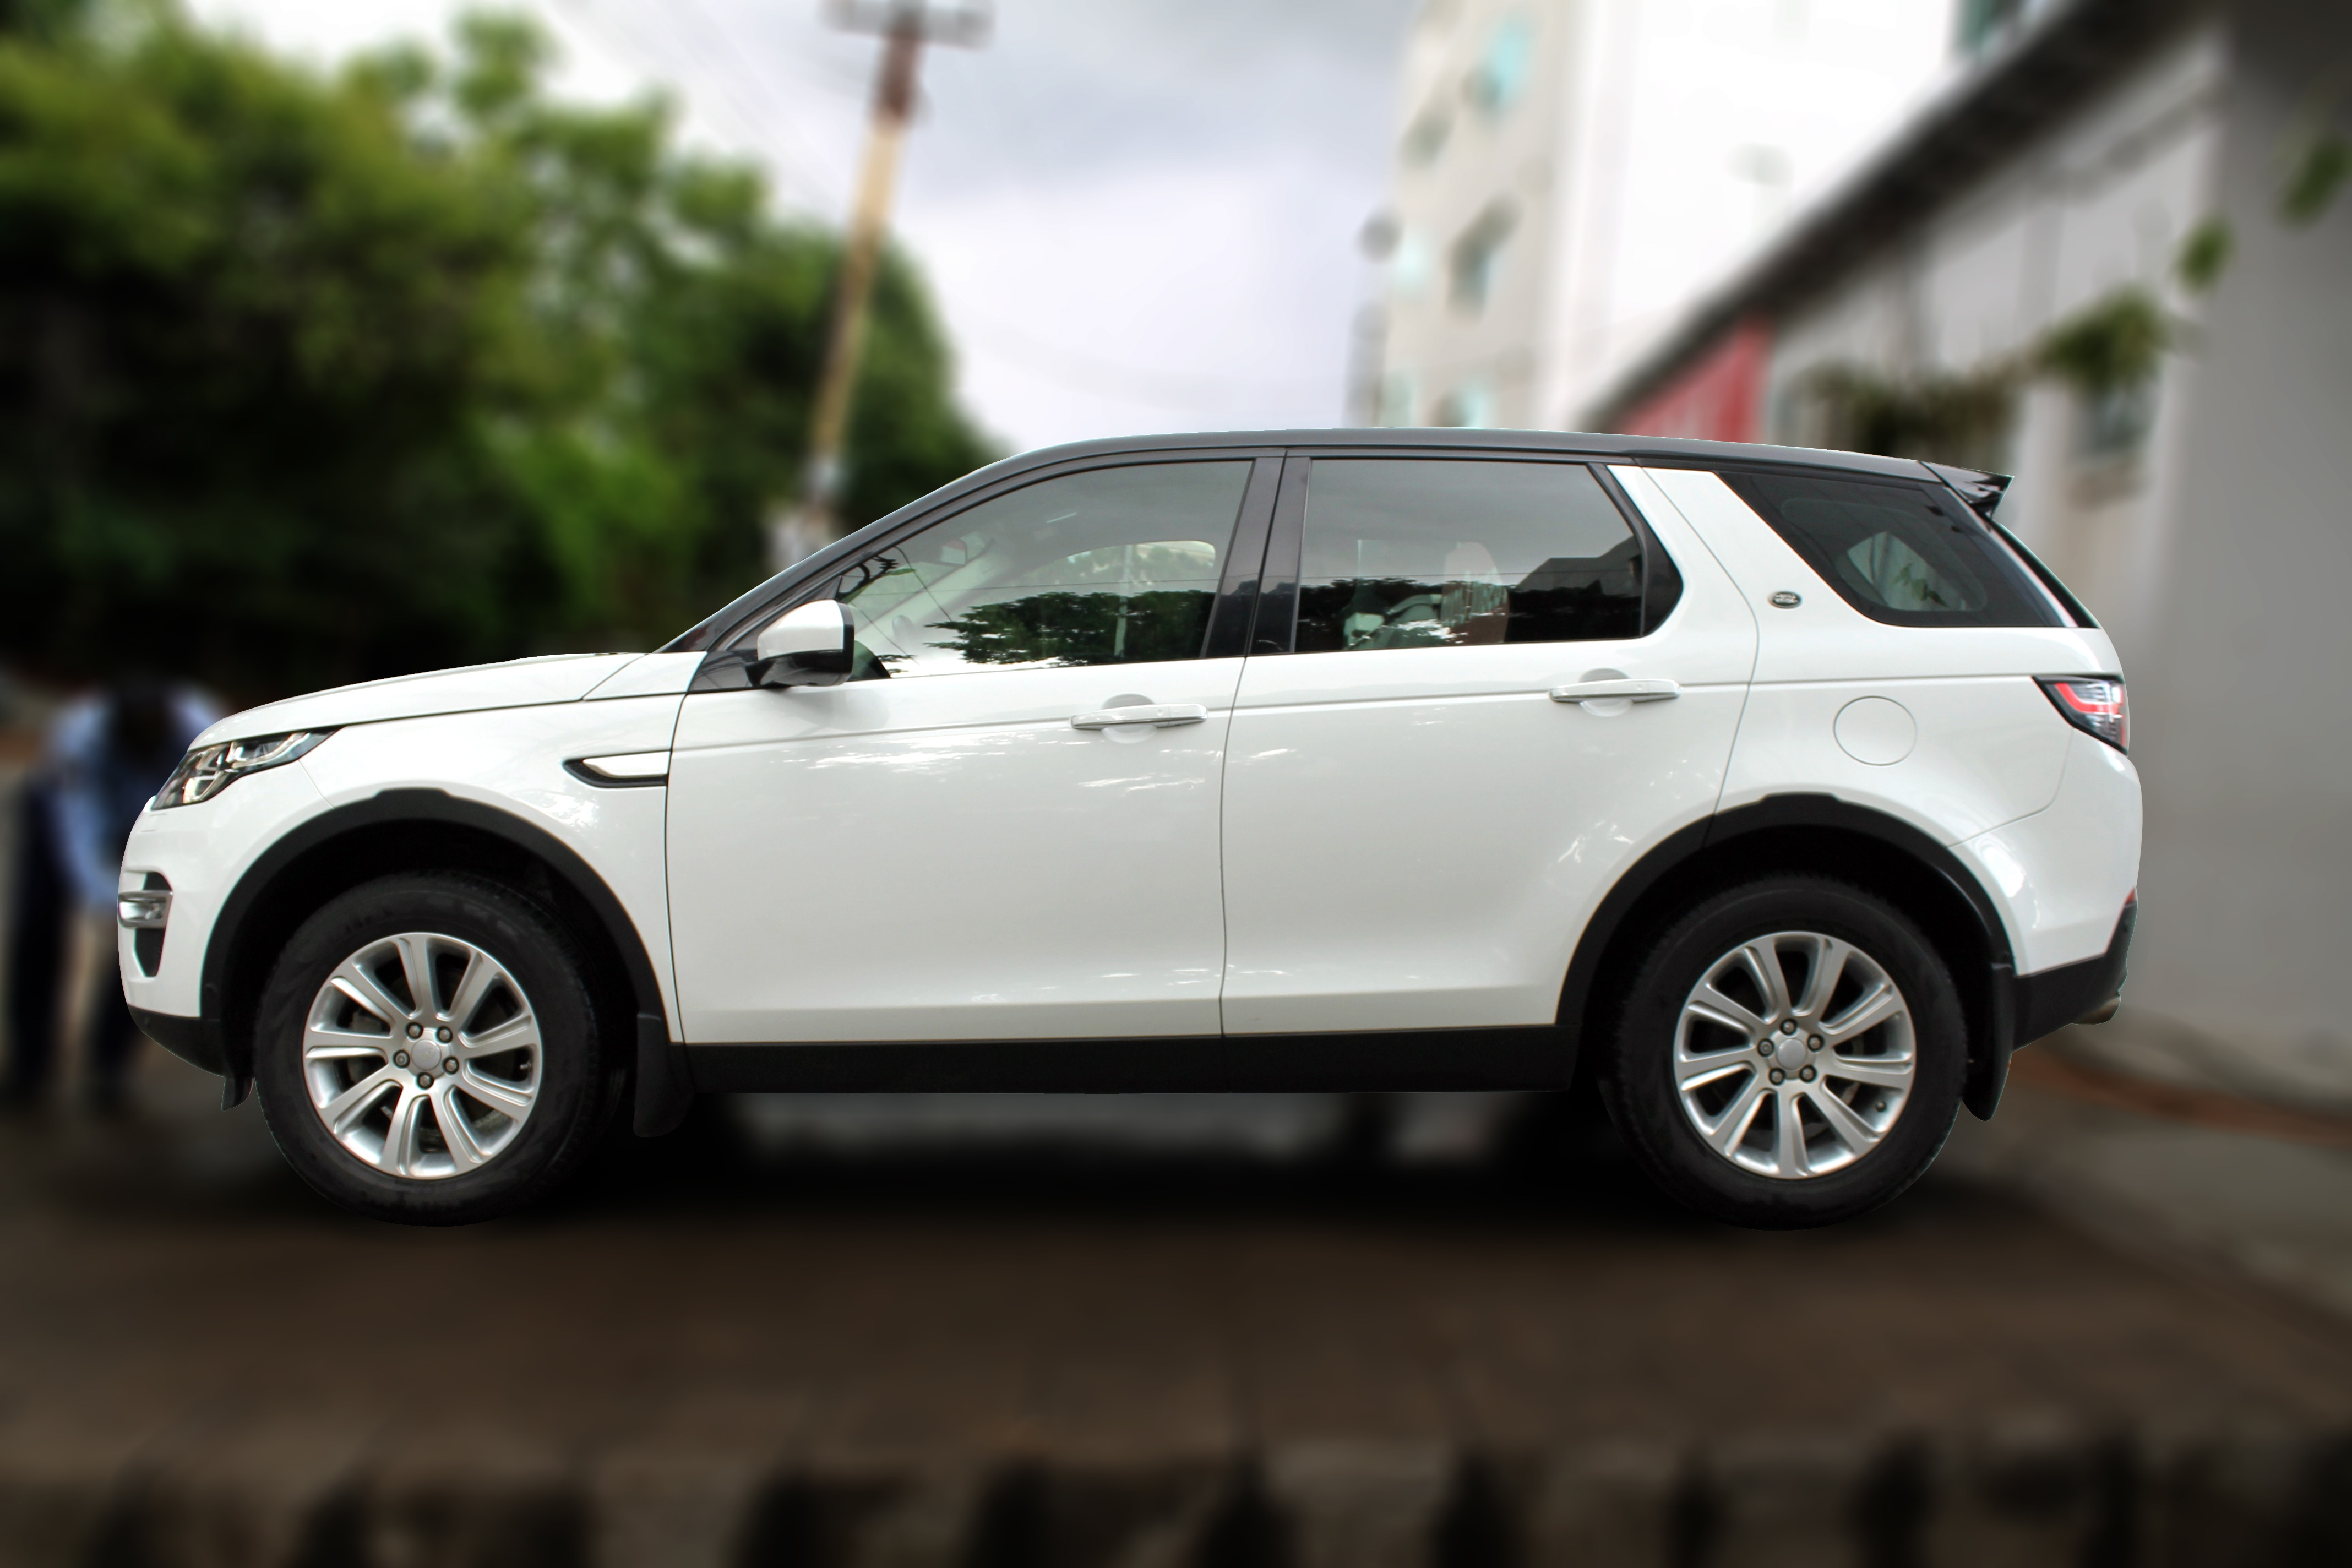 LANDROVER DISCOVERY SPORT 2.2L, (FUJI WHITE COLOR, DIESEL) 2016 model done only 24, 000kms in absolute mint condition... buy now and get one year #service pack from us. For further info call 7569696666